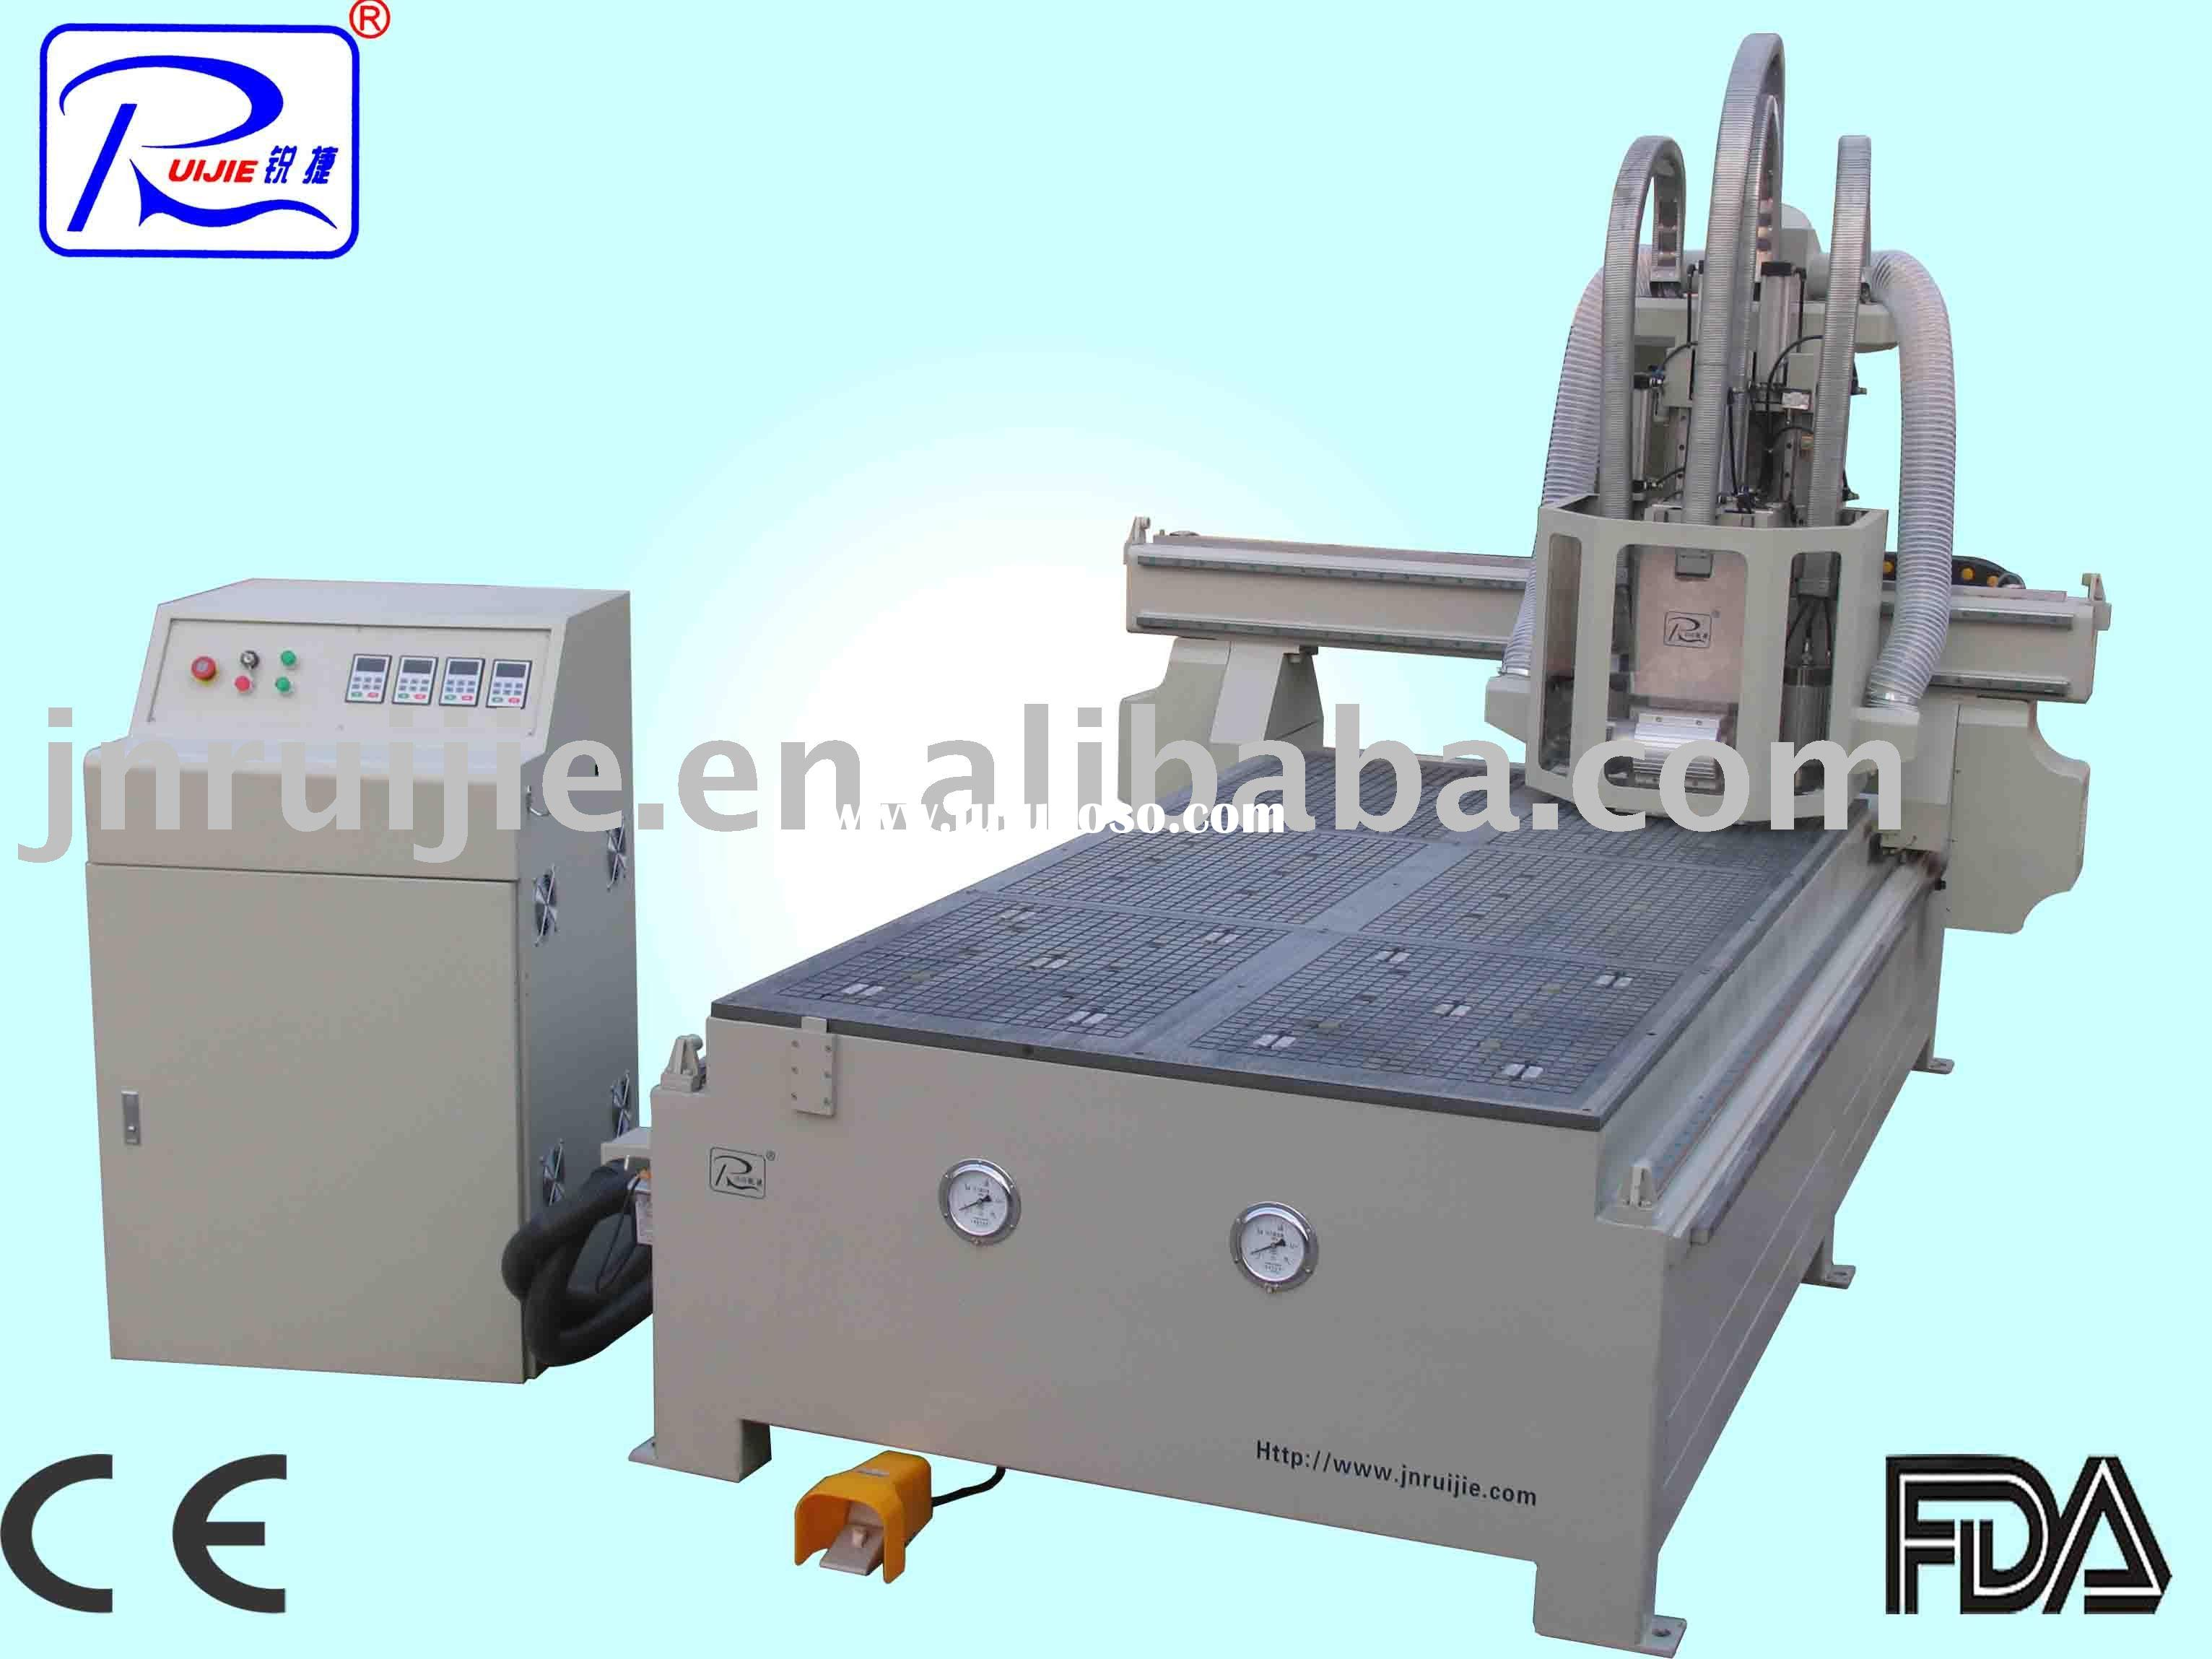 wood carving cnc router with 4 spindles